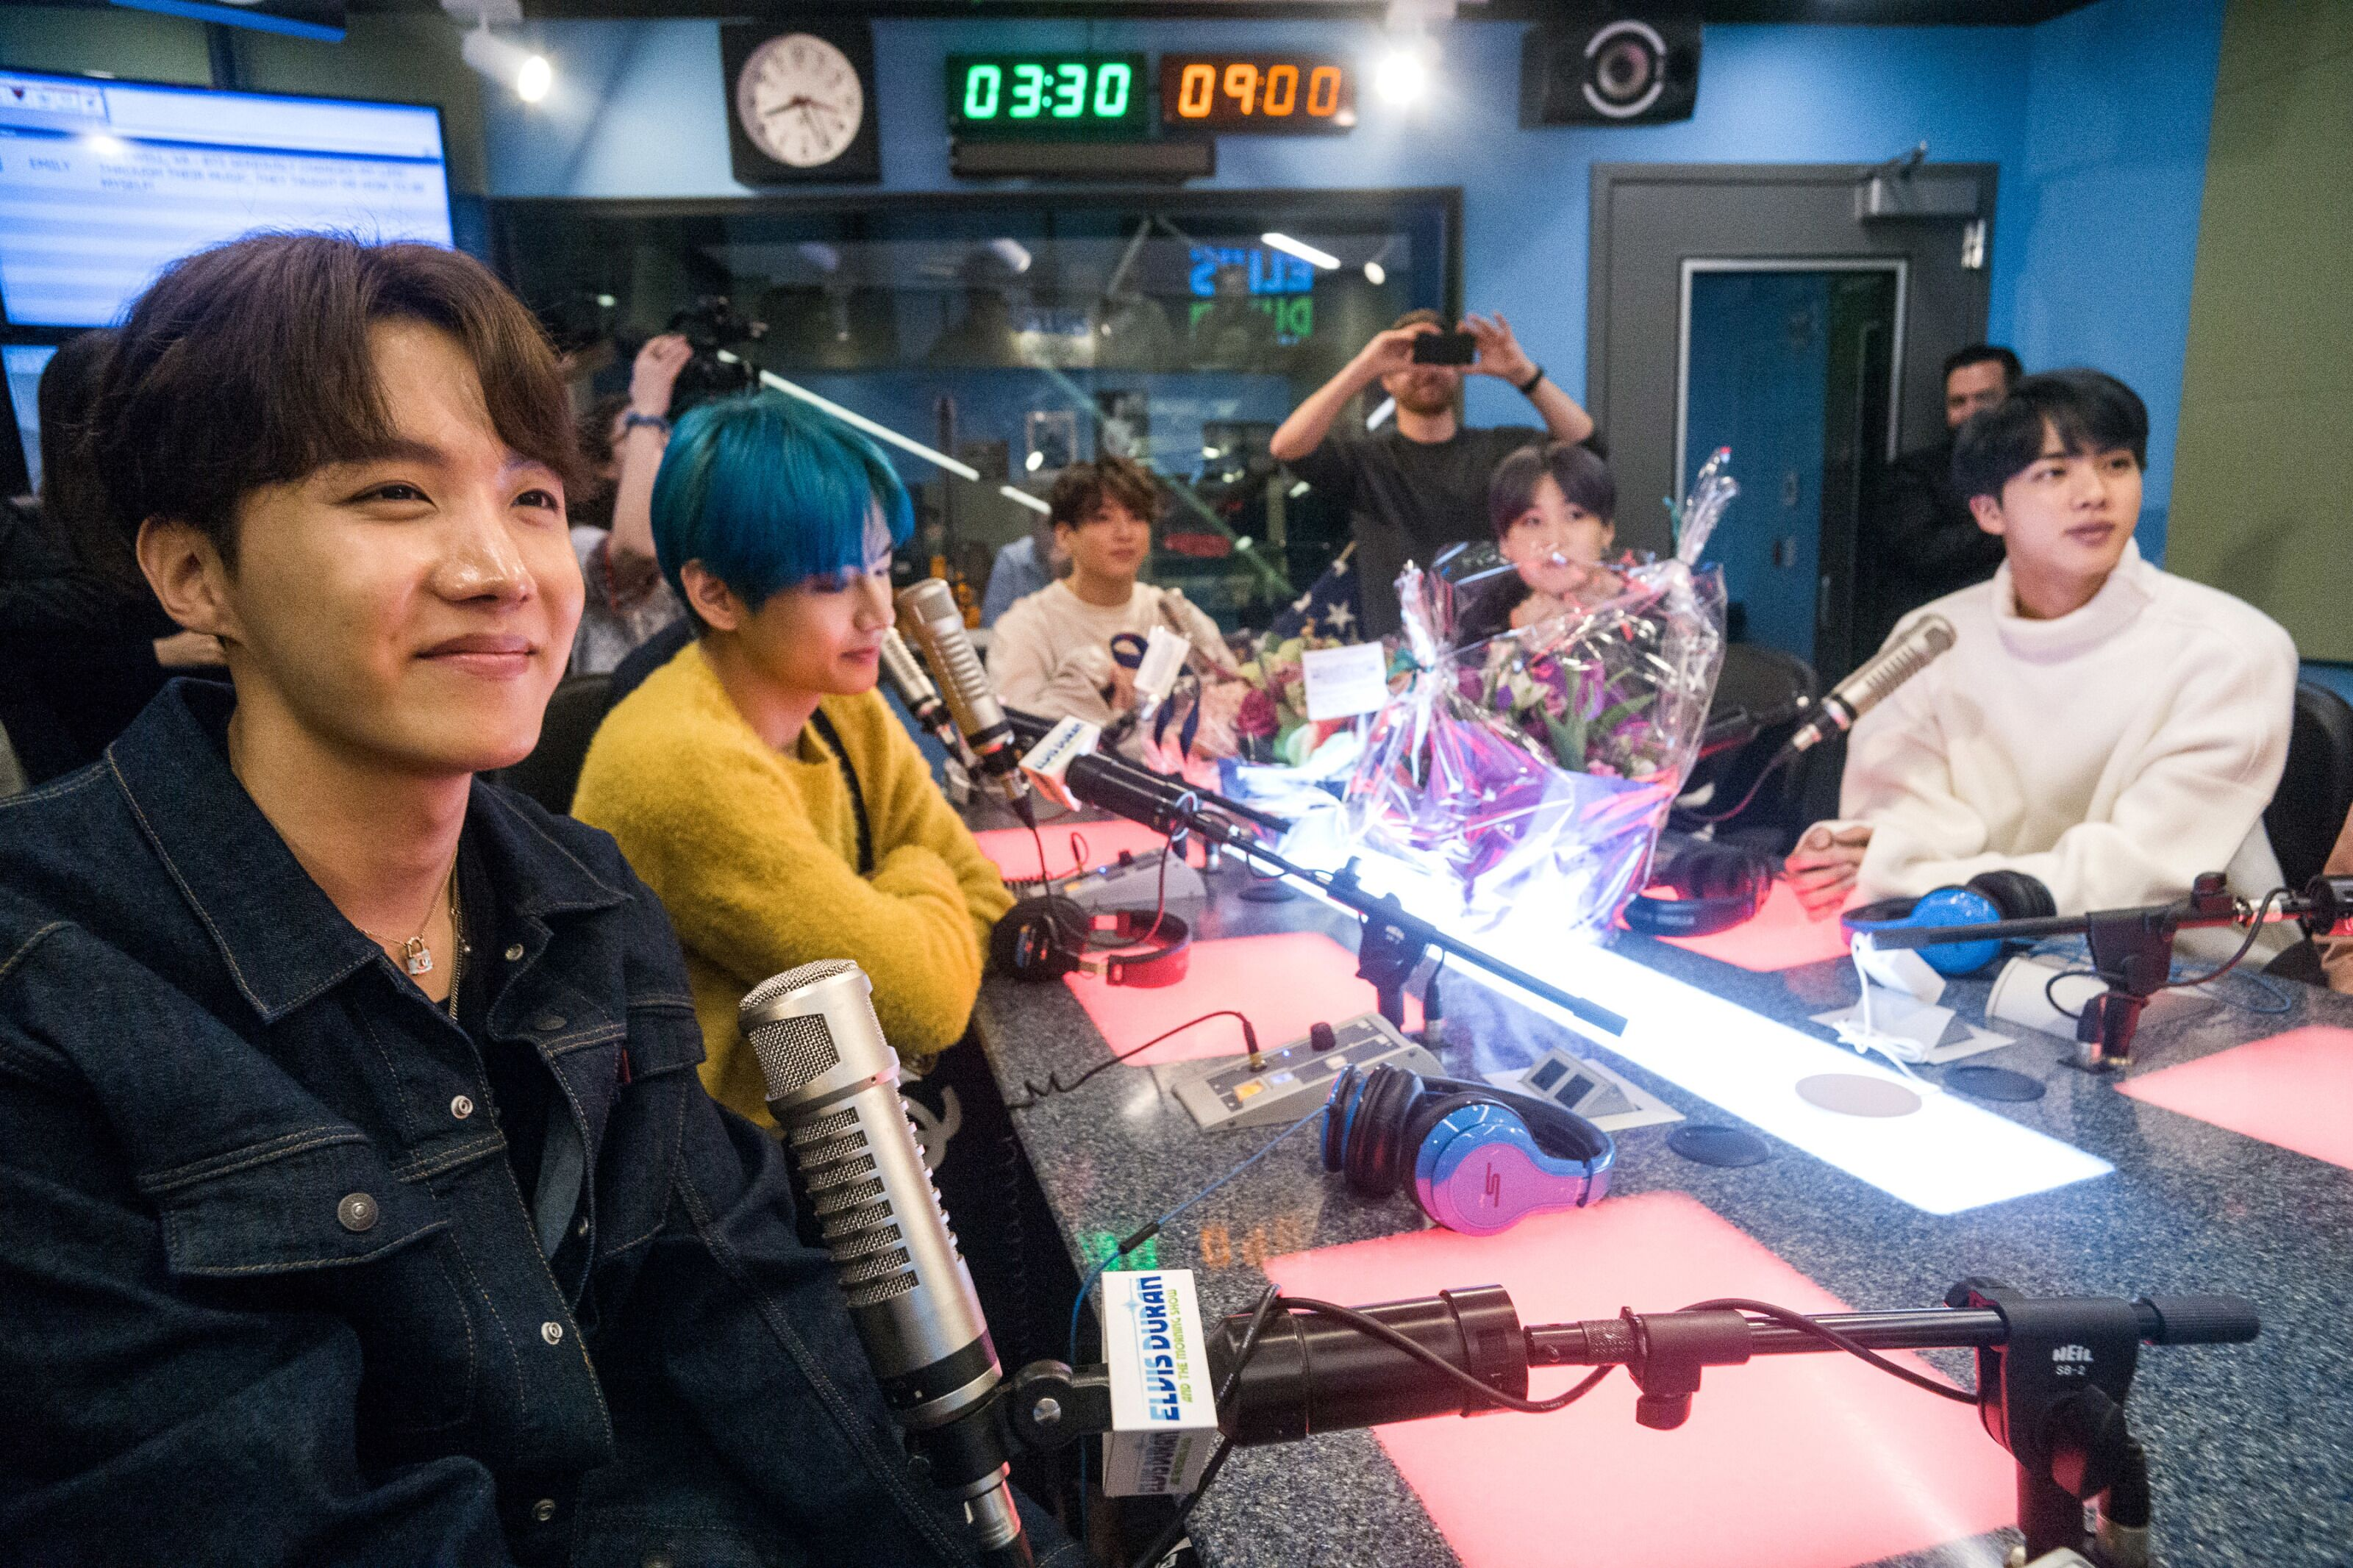 NEW YORK, NY - APRIL 12: (EXCLUSIVE COVERAGE) J-Hope, V, Jungkook, Suga, and Jin of BTS visit The Elvis Duran Z100 Morning Show at Z100 Studio on April 12, 2019 in New York City. (Photo by Steve Ferdman/Getty Images for Elvis Duran) (Photo by Steven Ferdman/Getty Images)